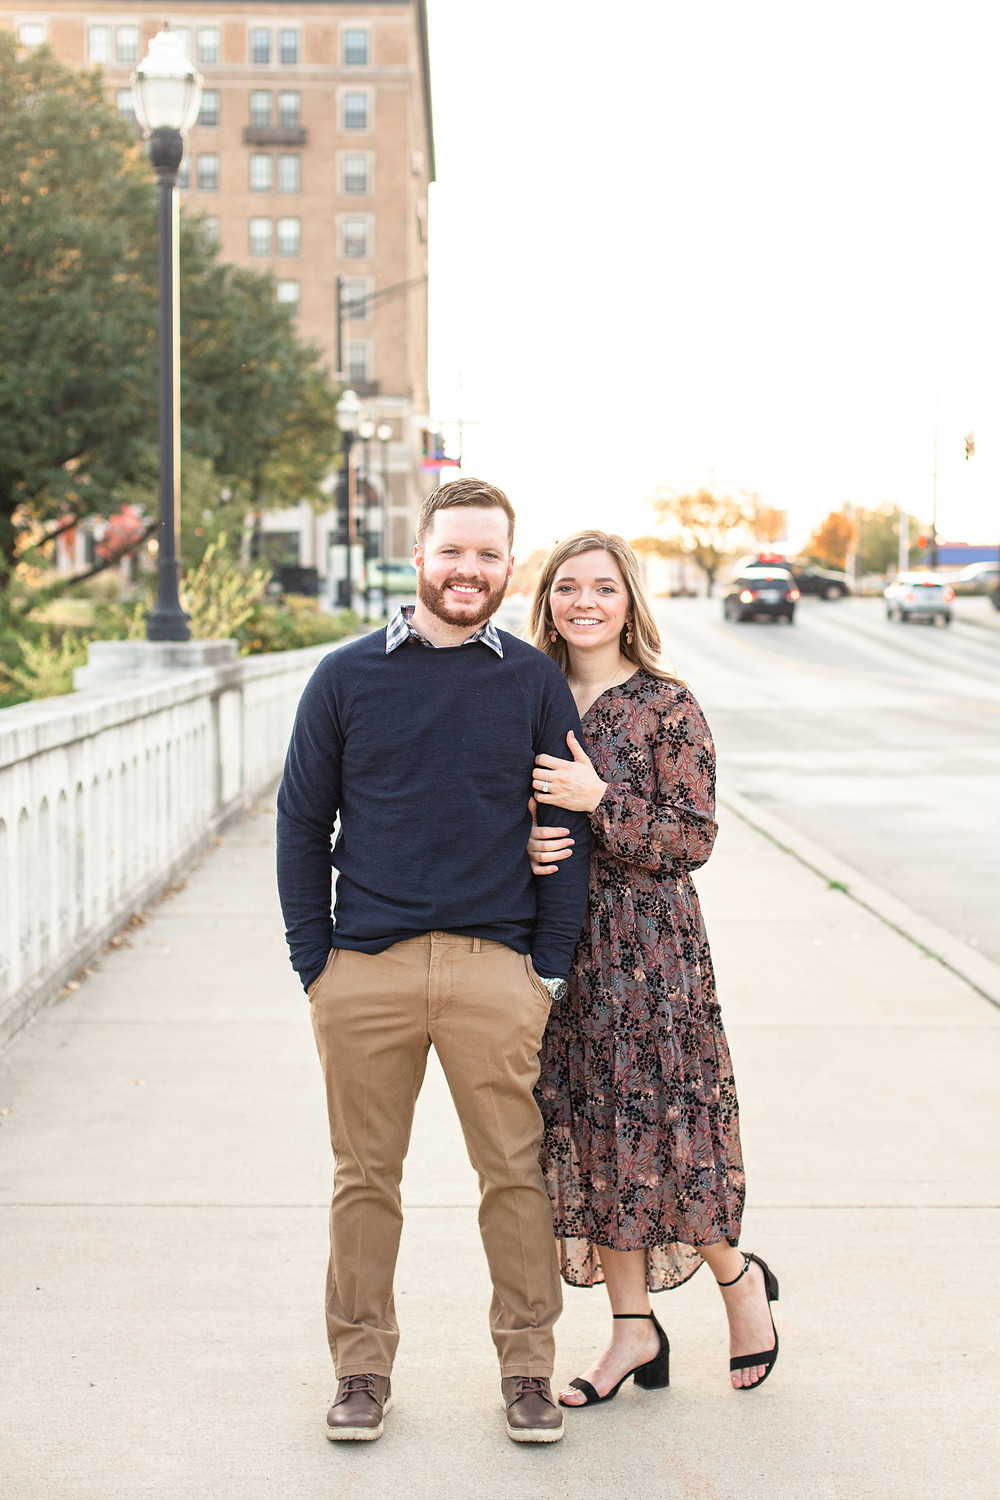 Josh and Andrea photography engagement photos south bend Indiana cute couple smiling standing